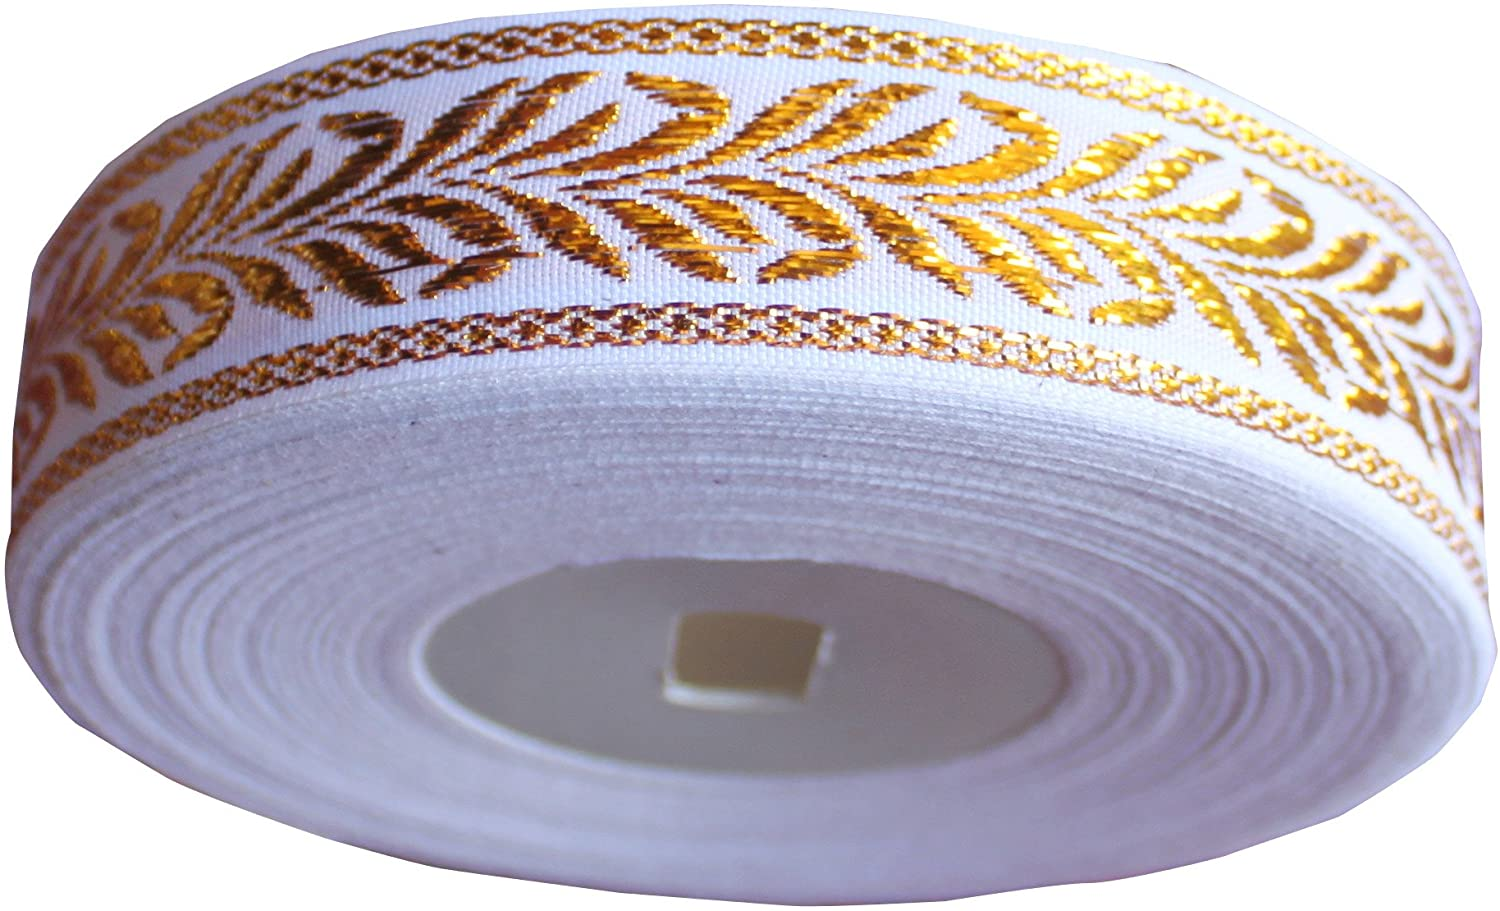 Full Funk Ribbon Roll Poly Silk Thread White with Golden Frond Art